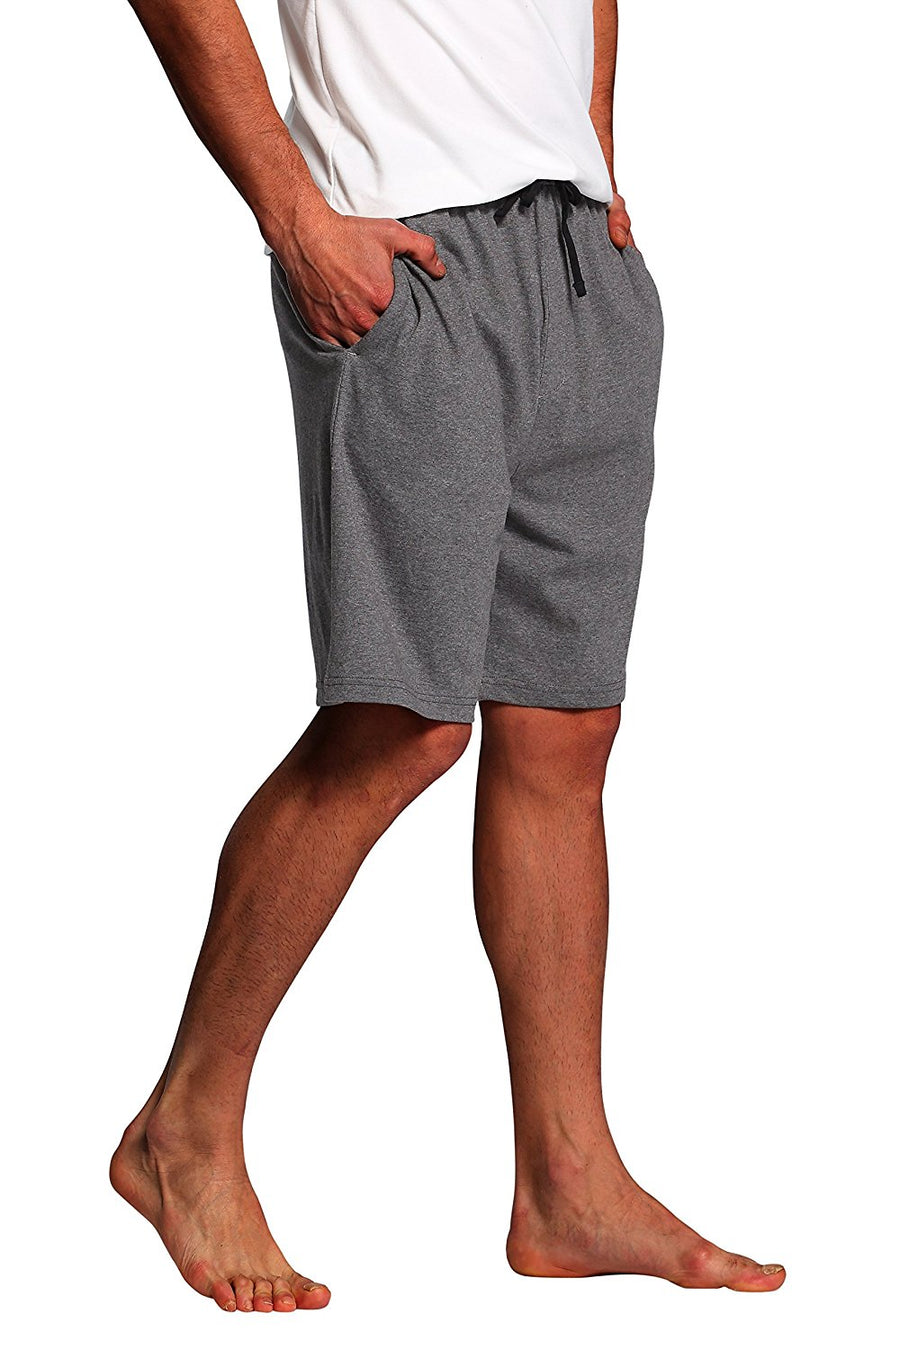 CYZ Men's Sleep Shorts - 100% Cotton Knit Sleep Shorts & Lounge Wear